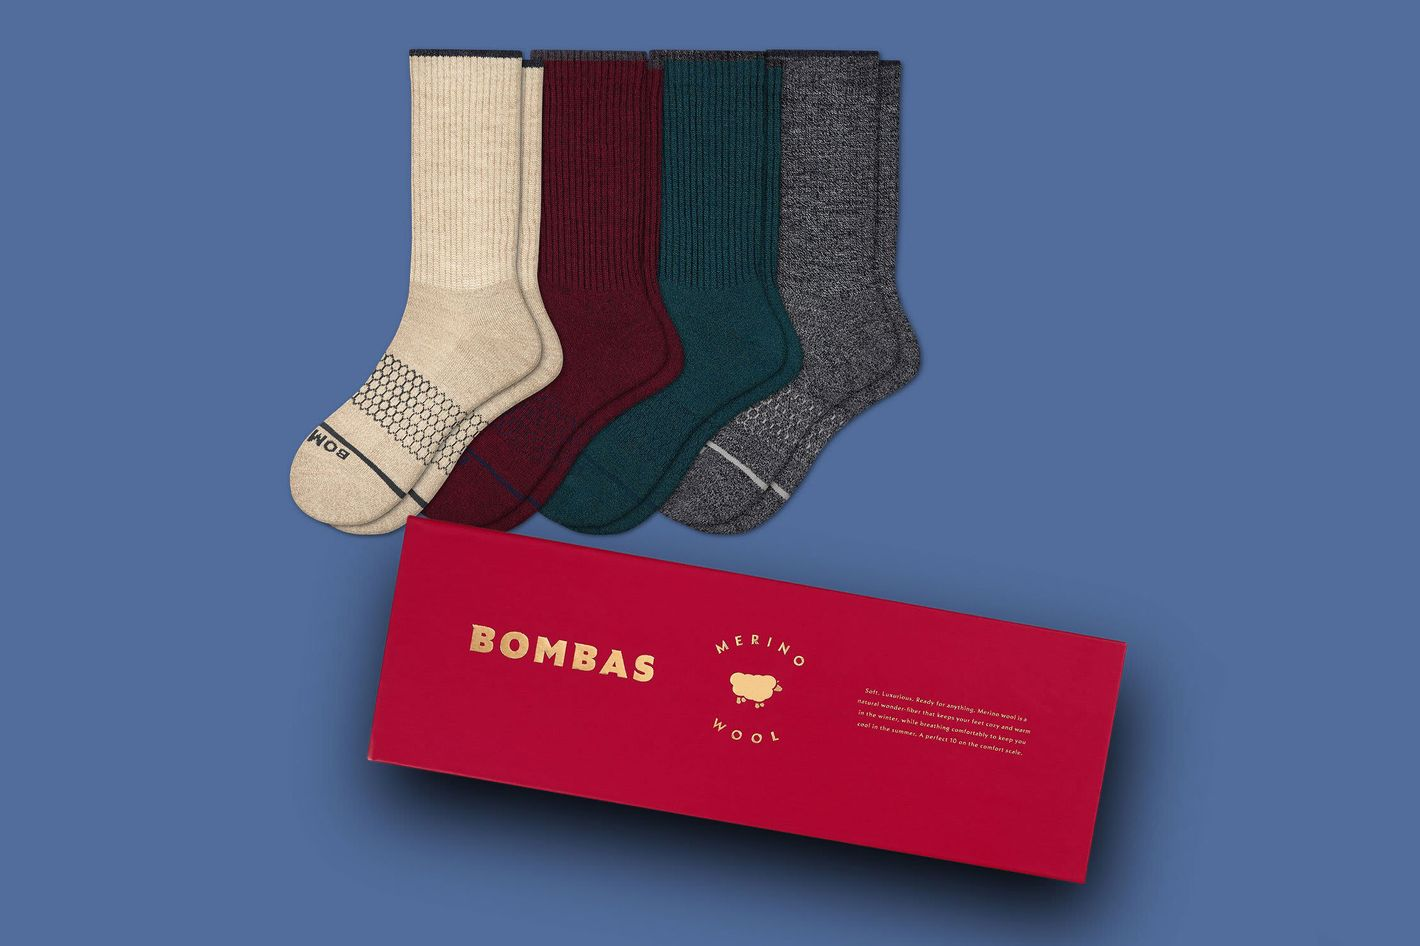 Bombas Men's Merino Wool Gift Box